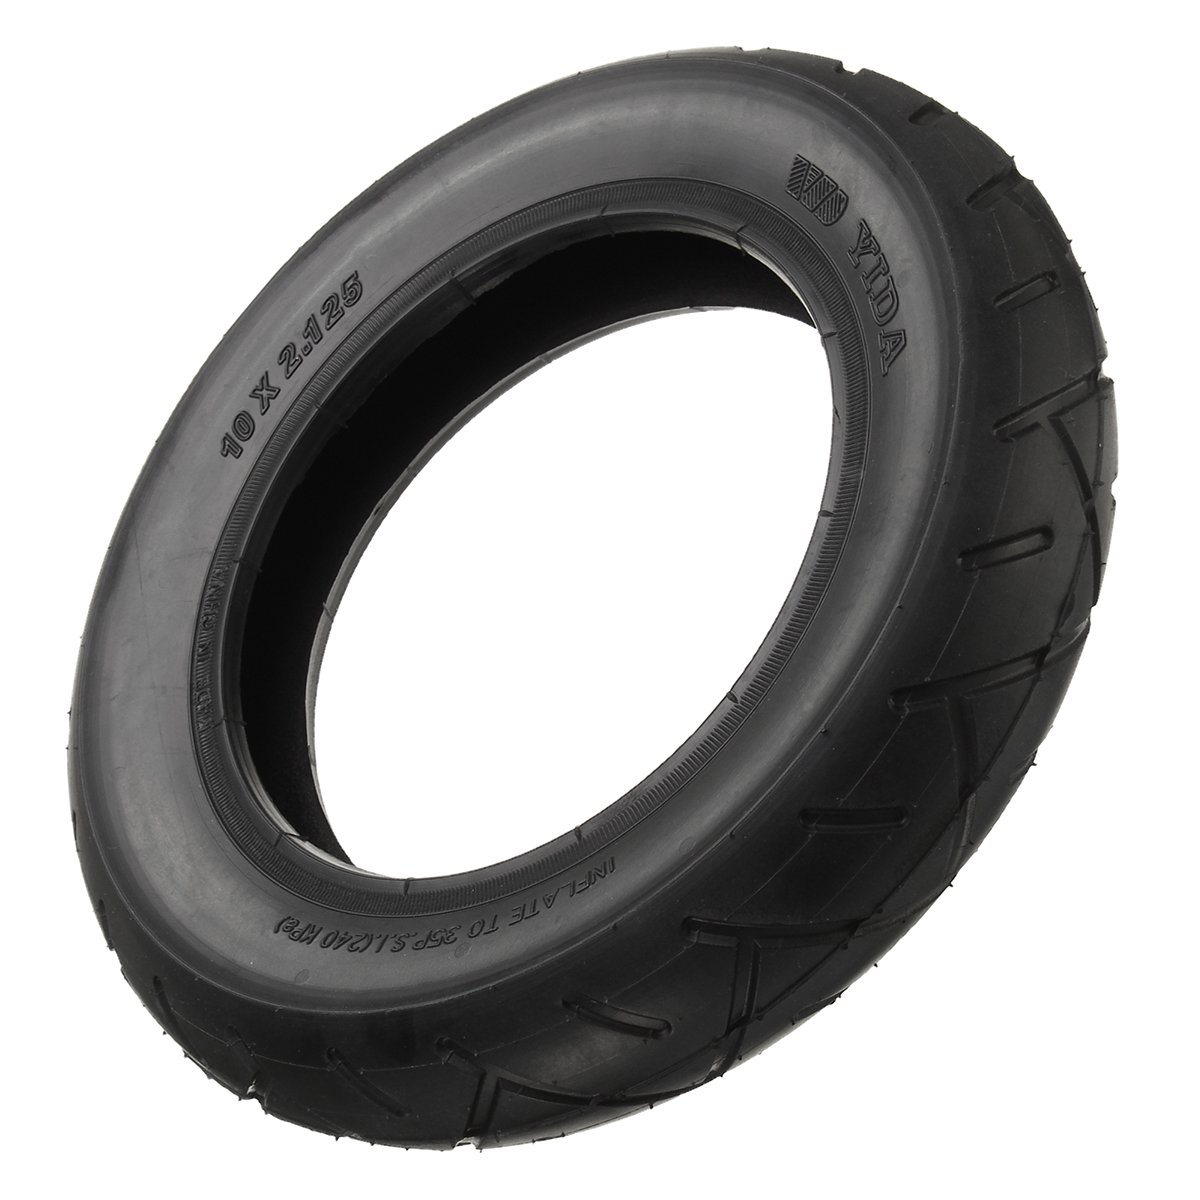 Kungfu Mall 10inch X 2.125inch Hot For Hoverboard Tire Inner Tube Self Balancing Electric Scooter